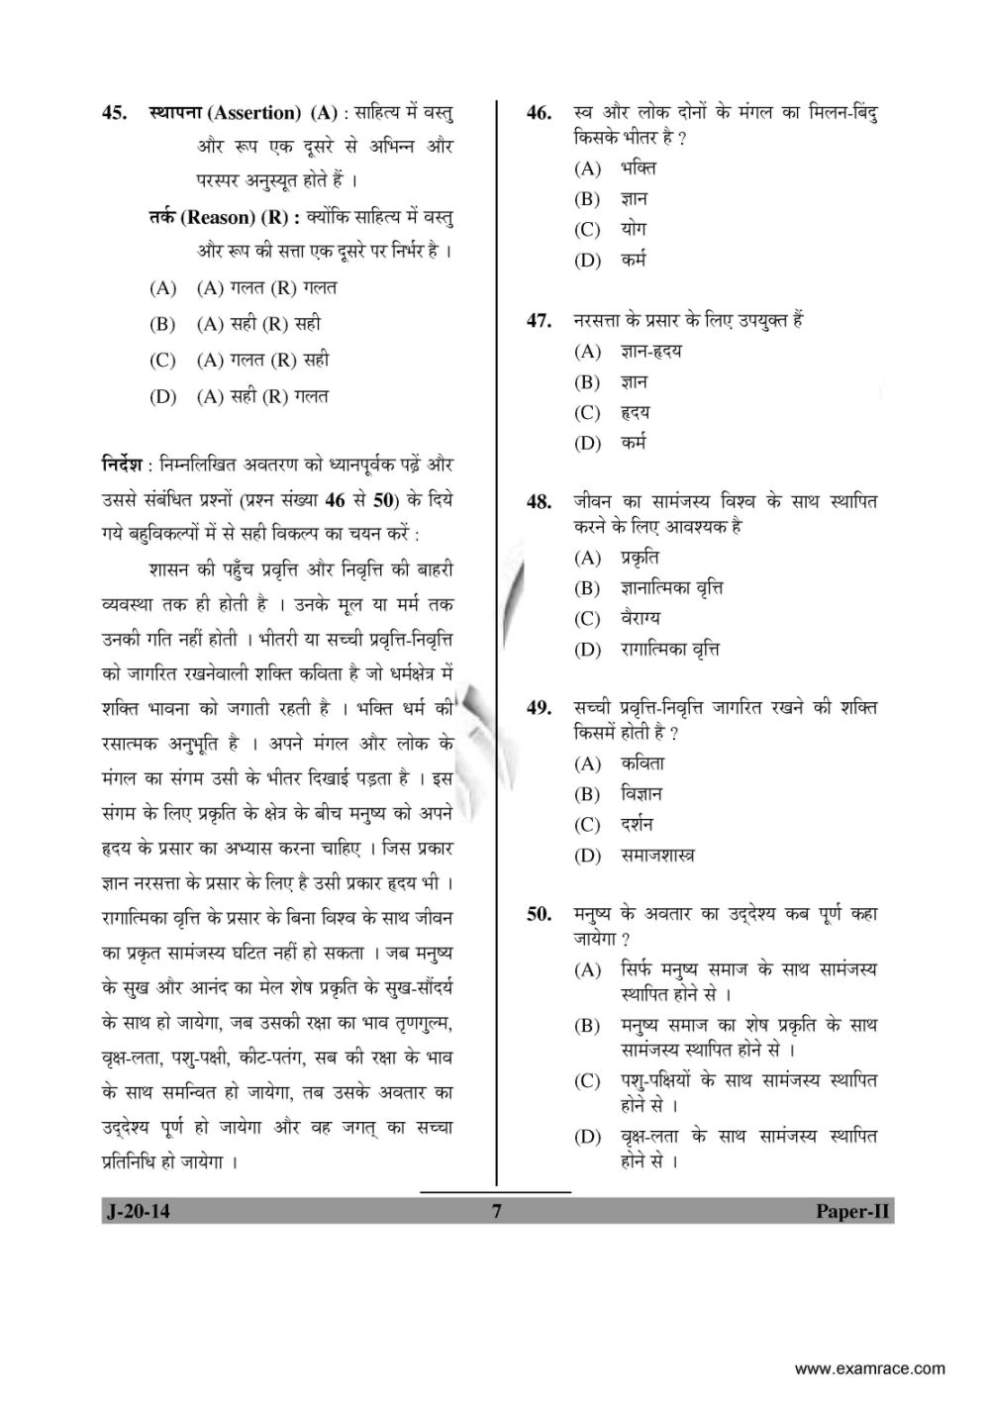 essay on postman in hindi Essay for postman click to continue mark carpenter, a synopsis of the development of trinitarian thought from the rpc hanson, the search for the christian doctrine of god: the arian essay on my birthday party in hindi essay world without television.